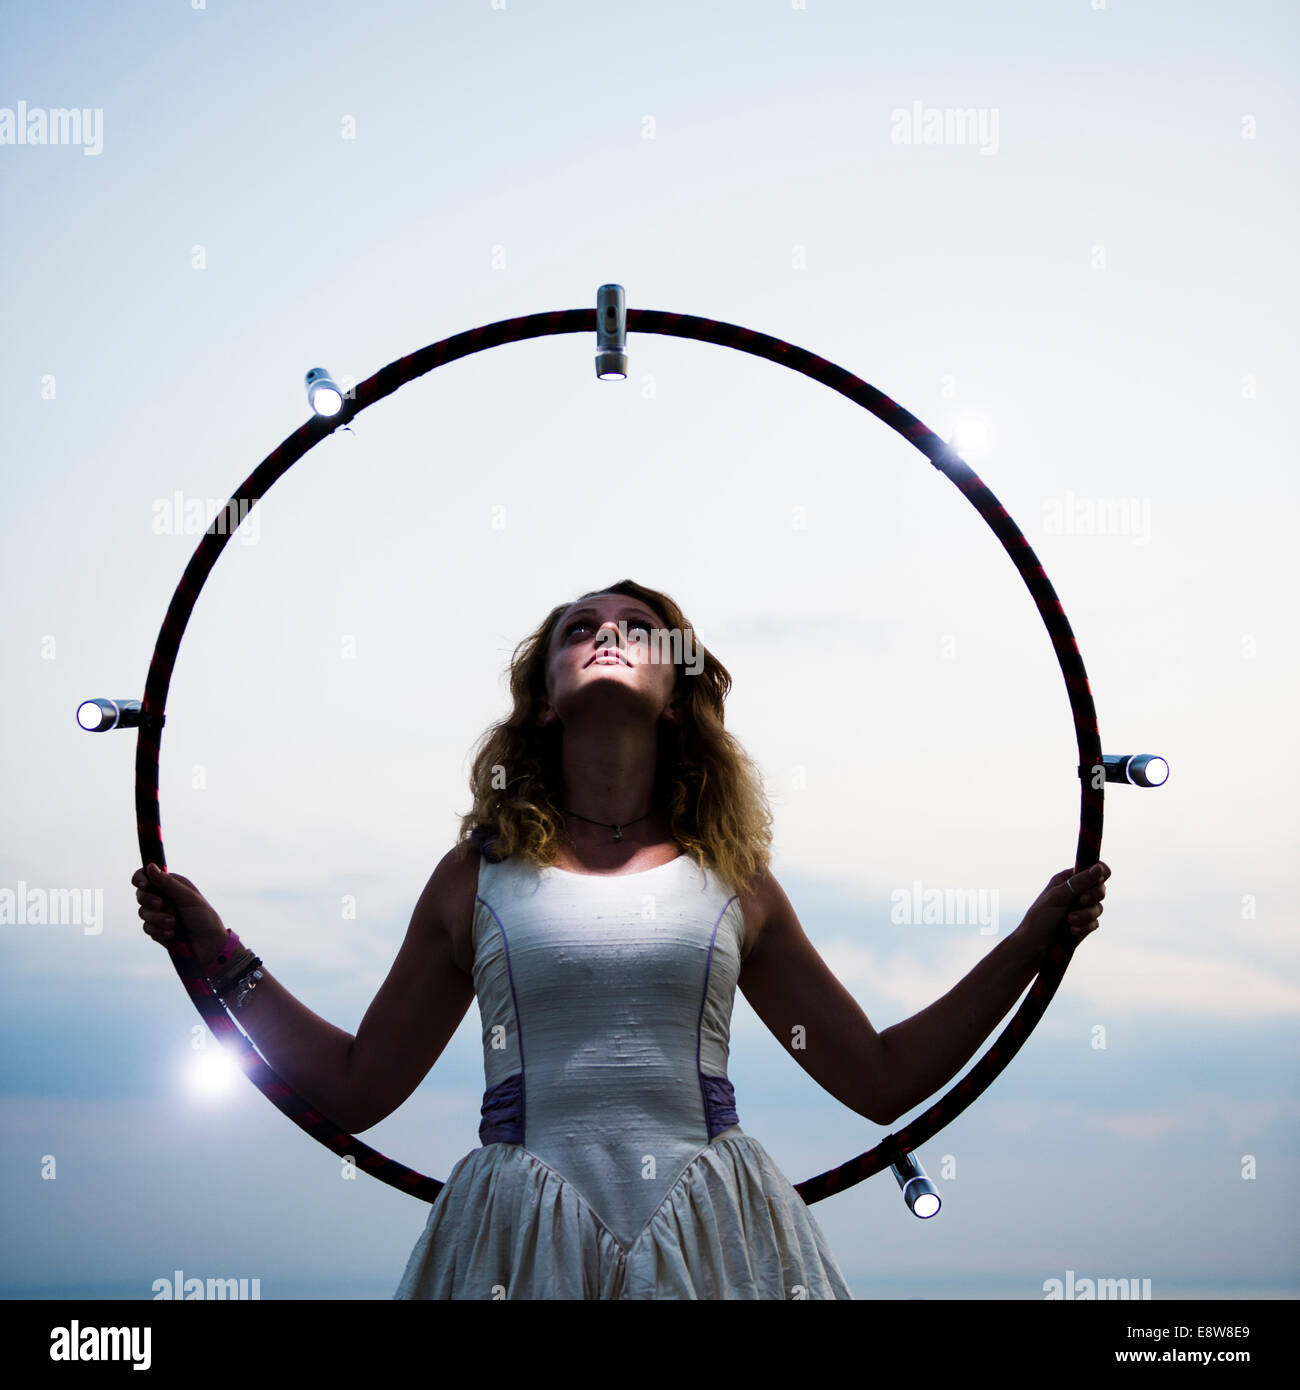 A woman in a wedding dress holding a hula hoop  with lights - Stock Image